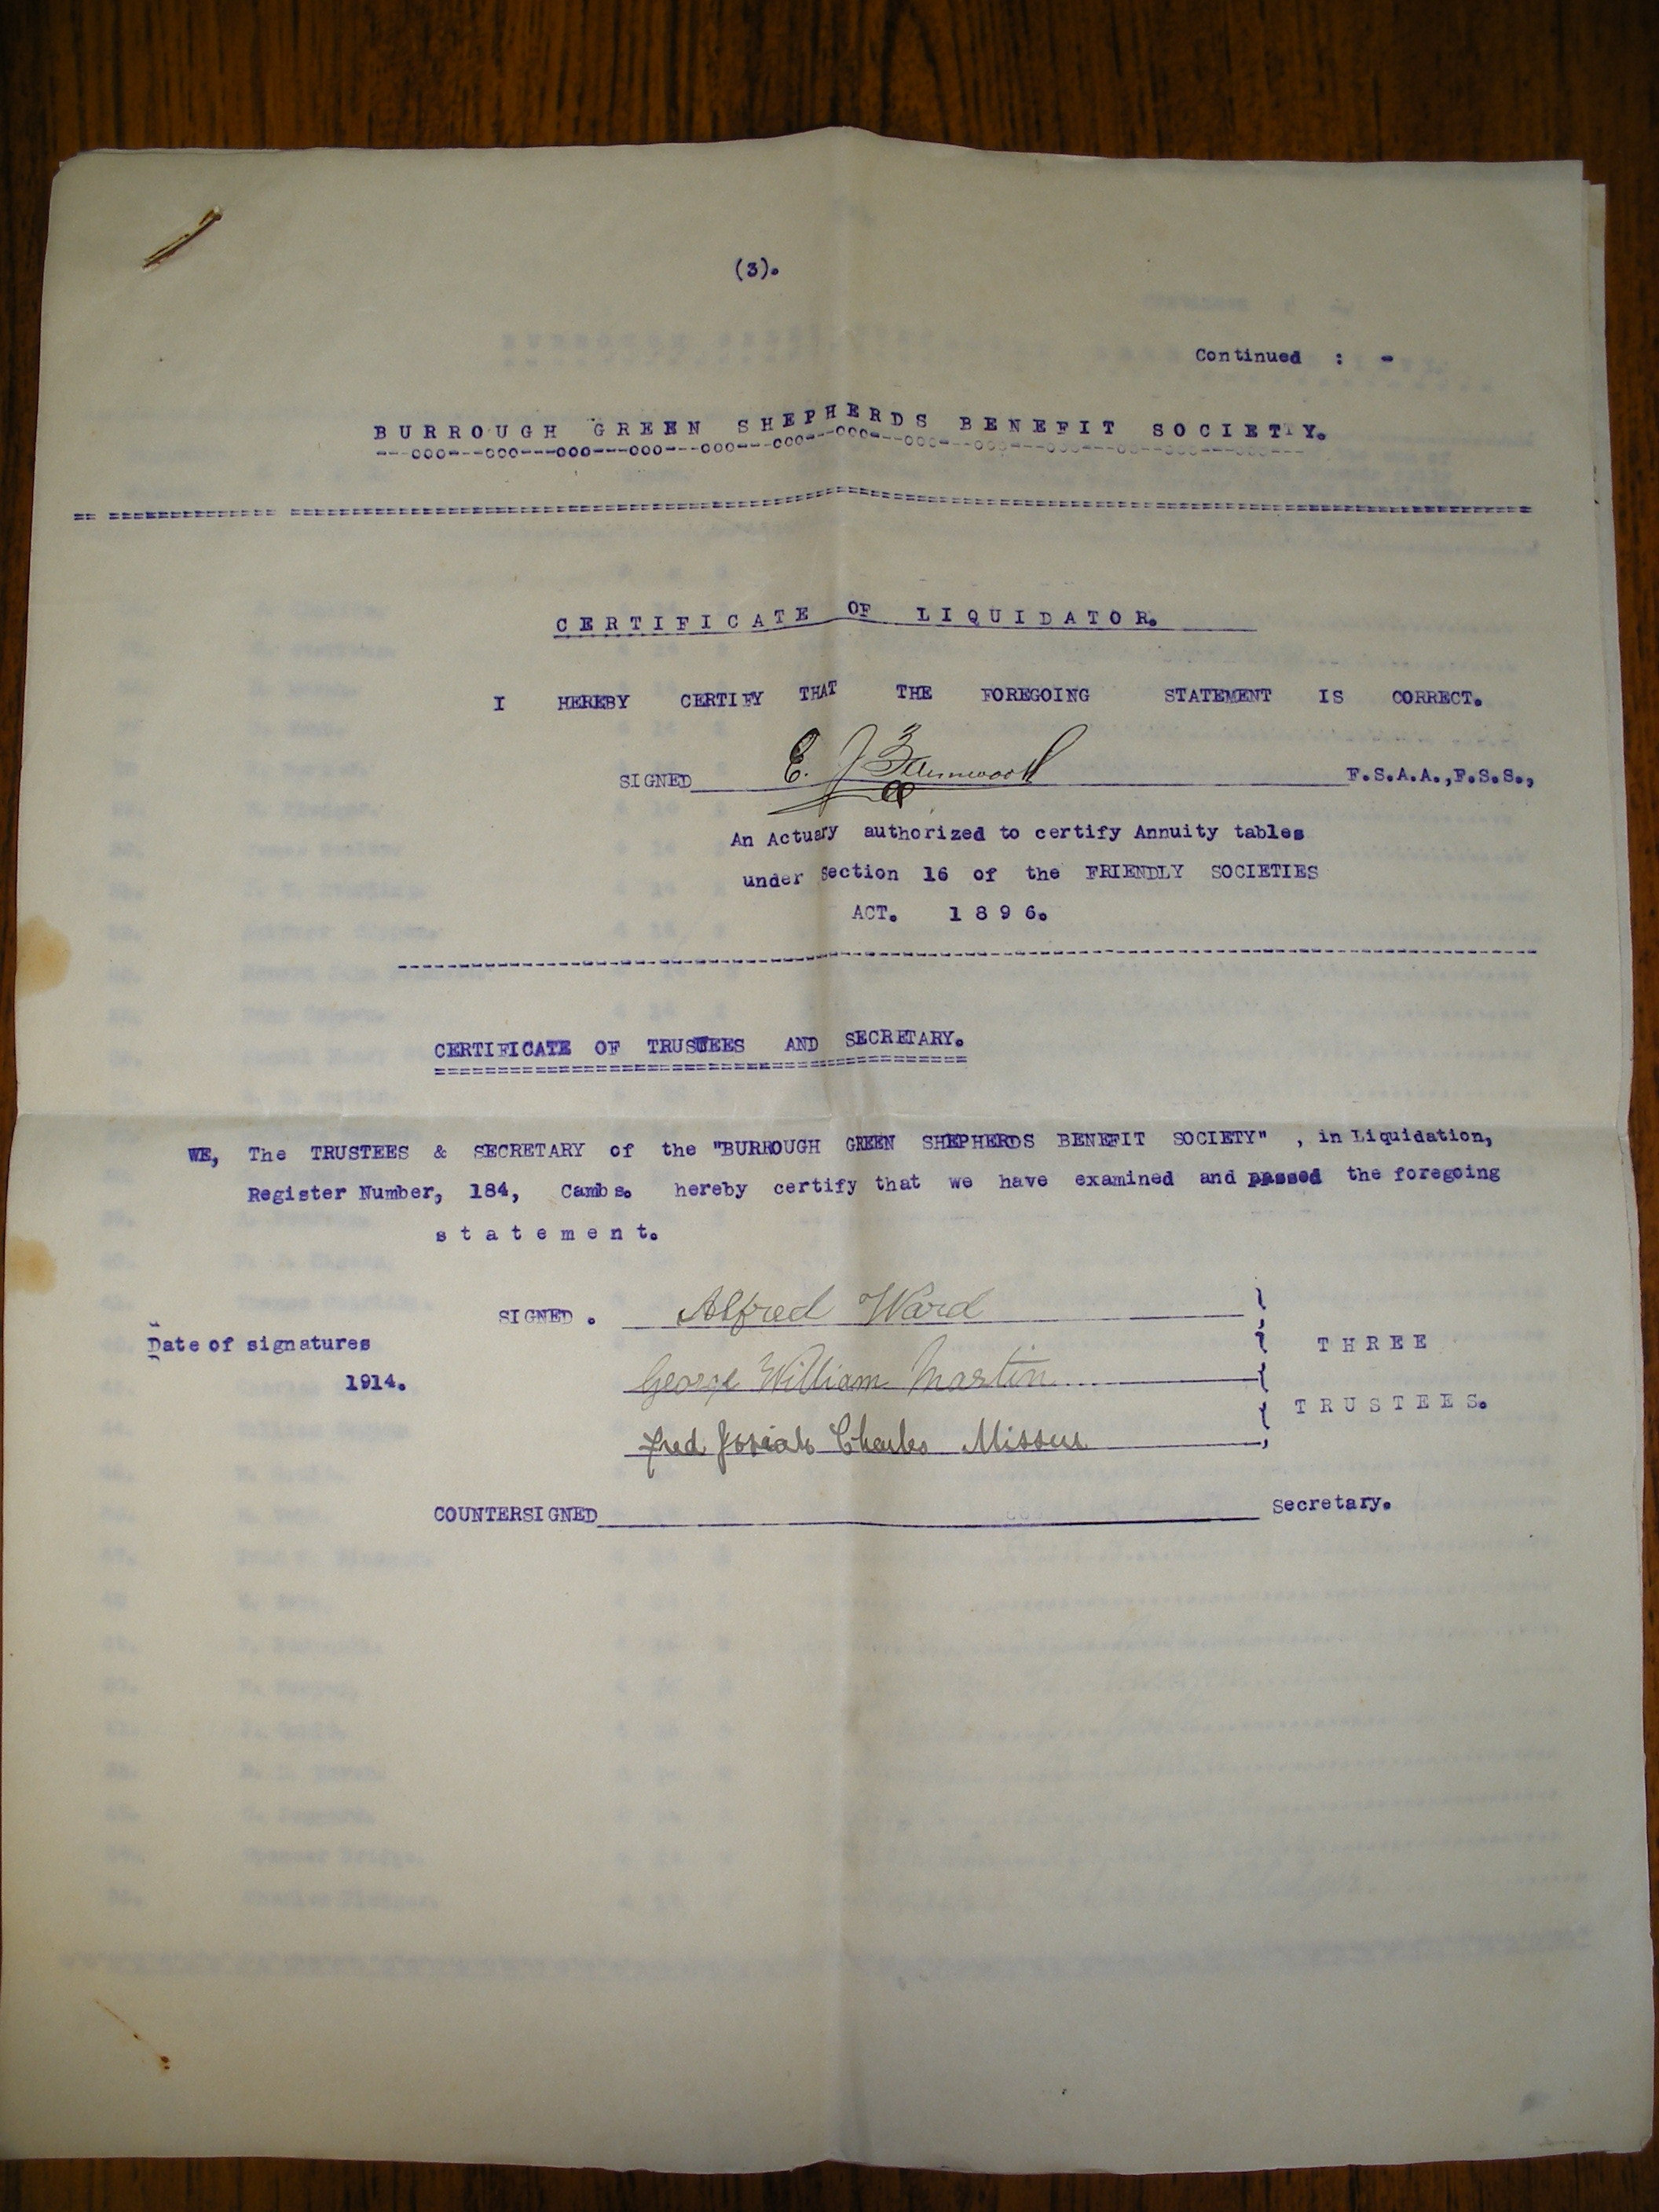 Burrough Green Front Sheet Of Certificate Of Dissolution Of